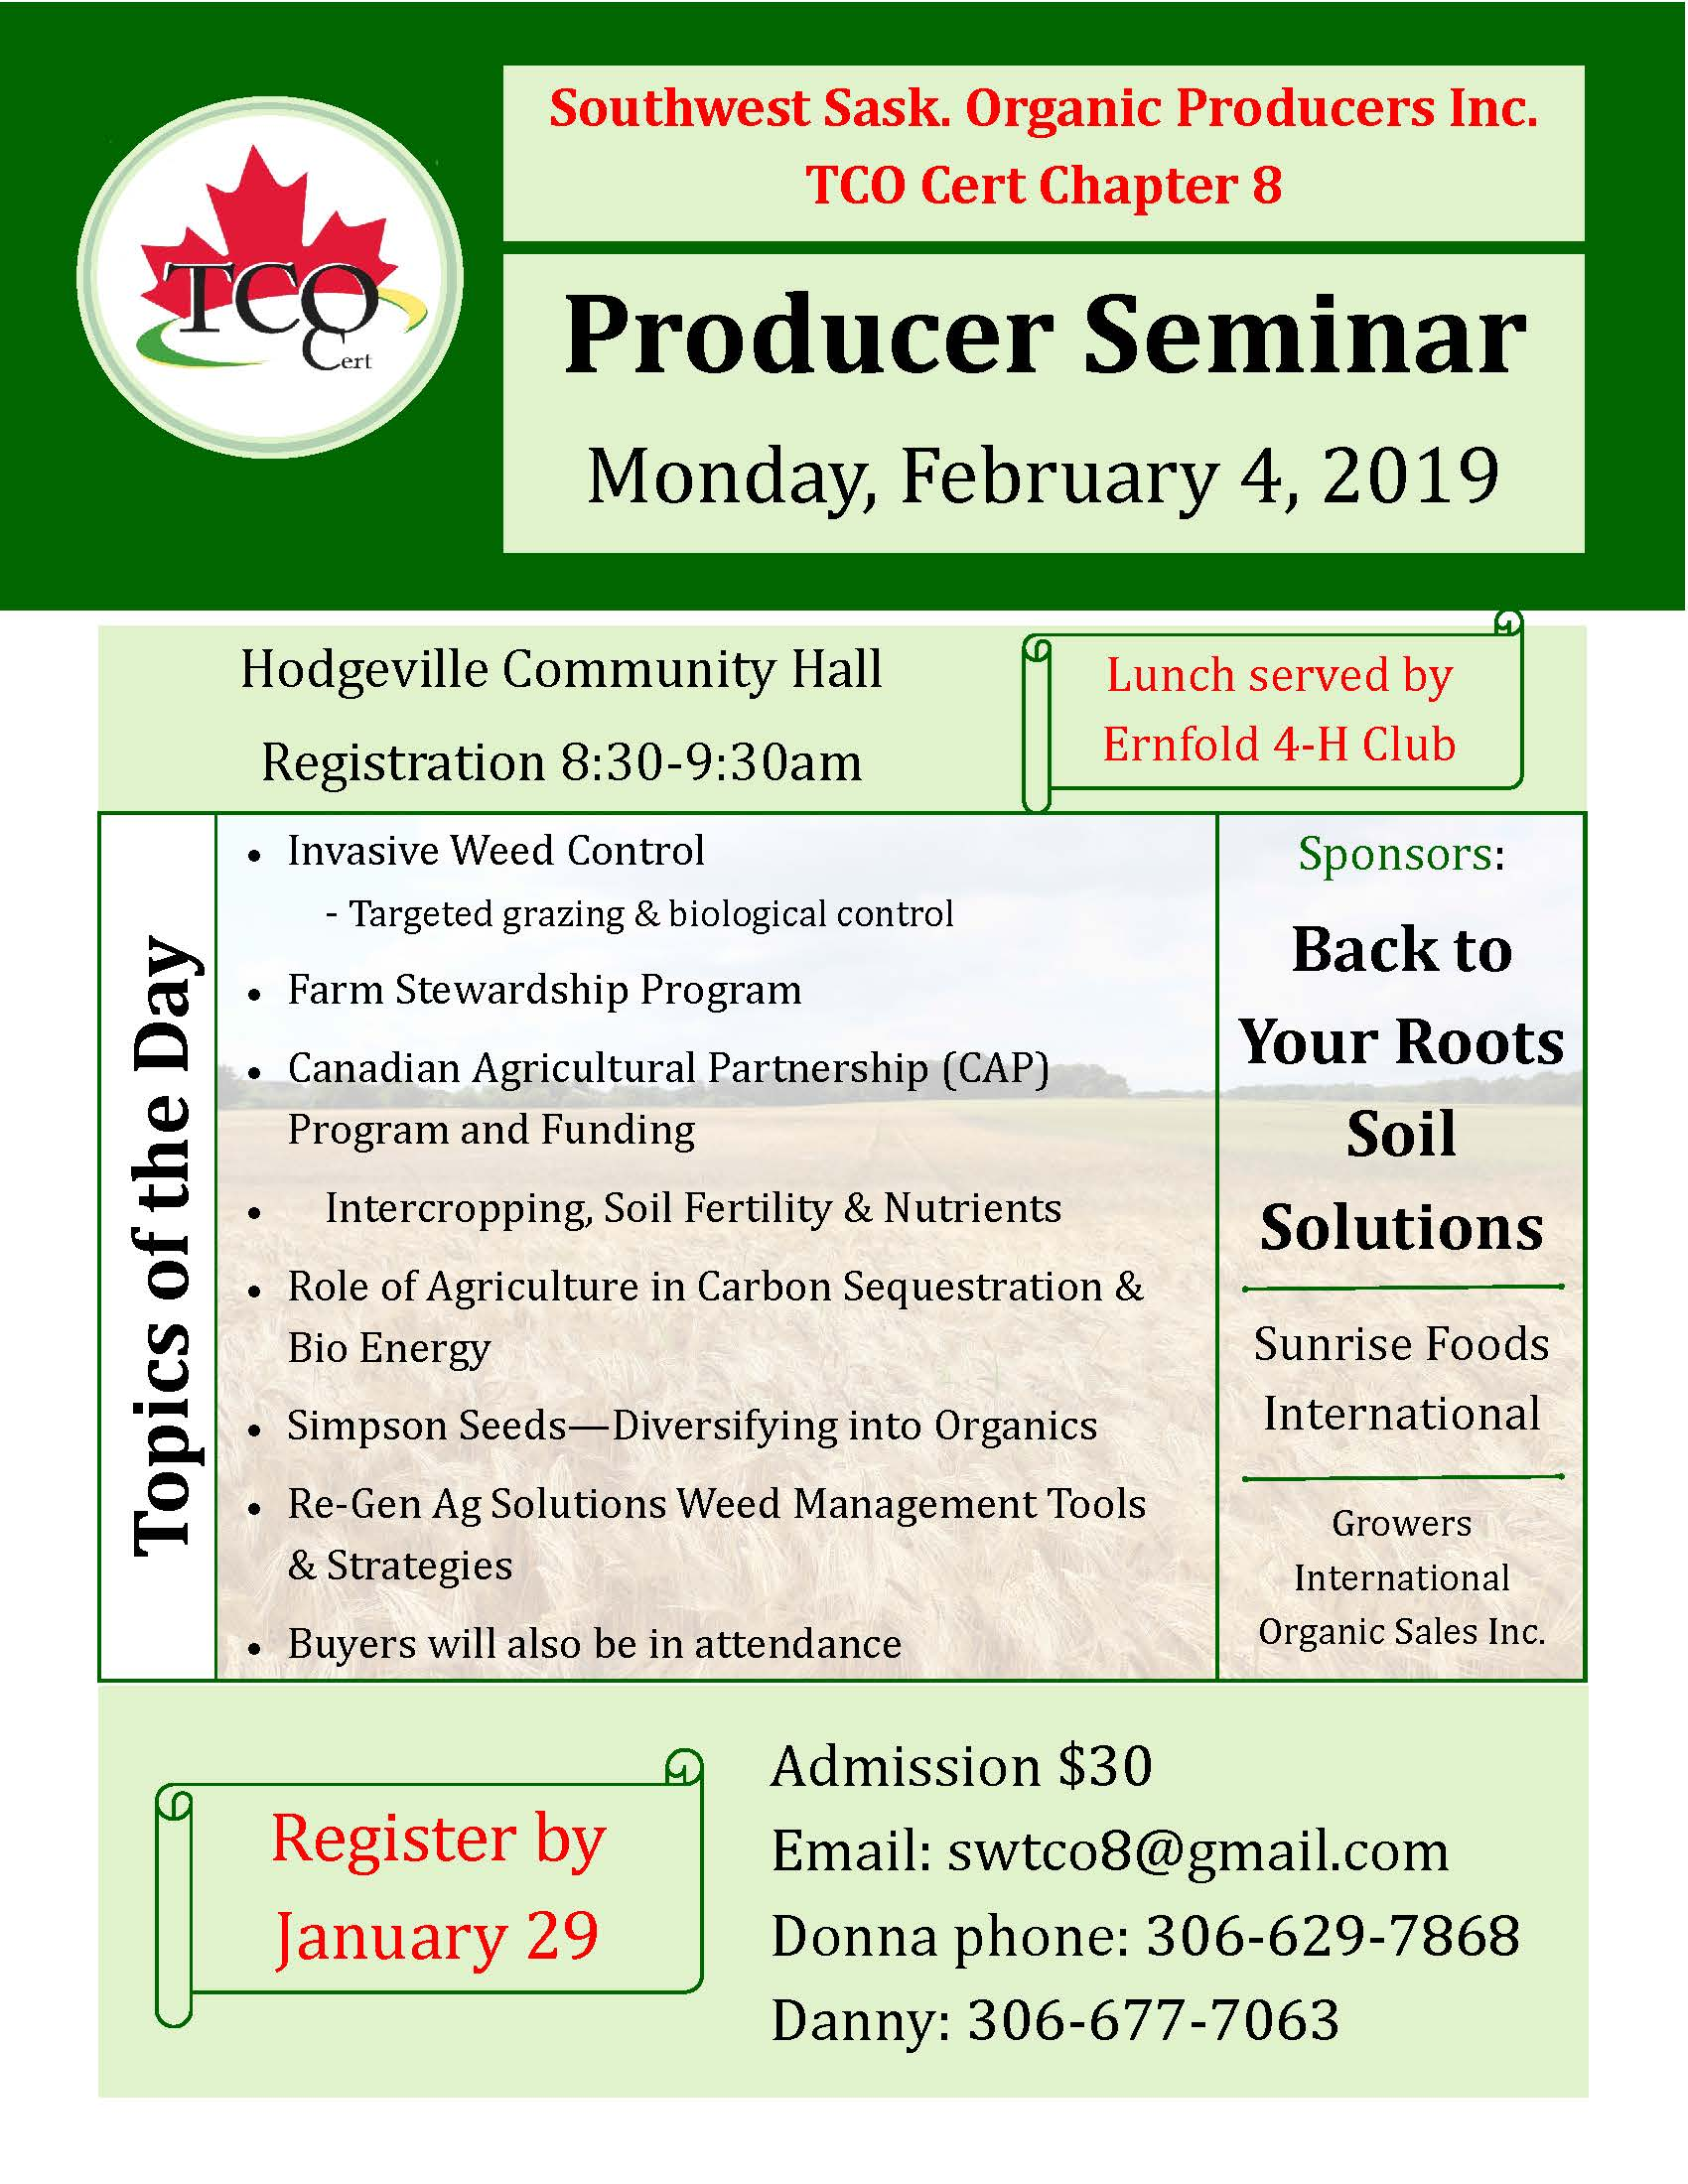 Organic Producer Seminar – Southwest Sask Organic Producers Chapter 8